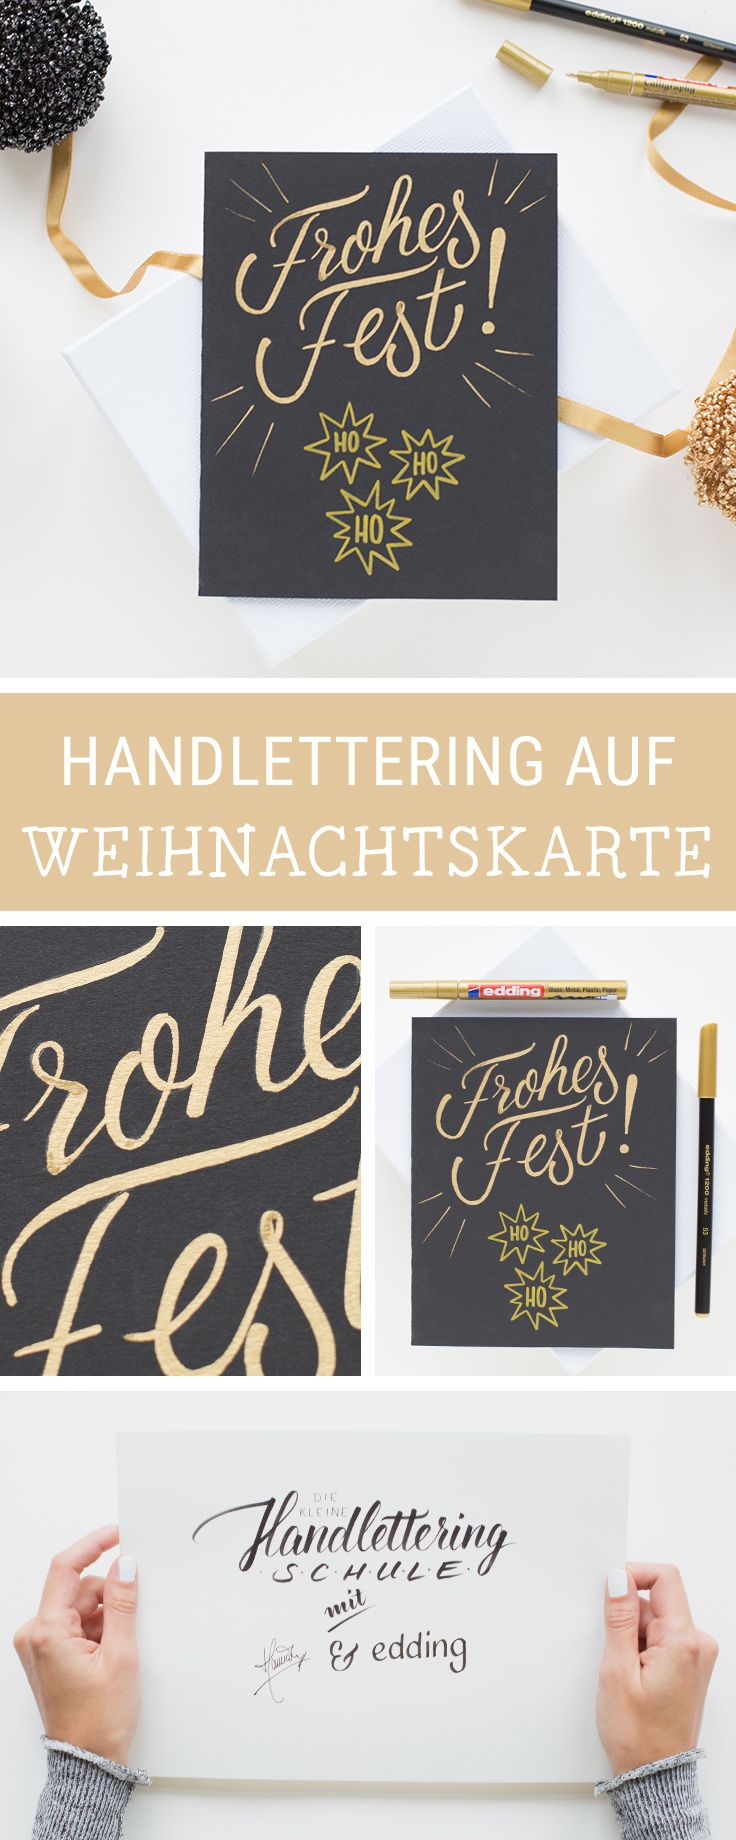 DIY-Inspiration für gestaltete Weihnachtskarten: Wir zeigen Dir zusammen mit edding, wie Du eigene Handletterings auf Karten umsetzt / christmas handlettering on christmas cards: learn how to do beautiful calligraphy via DaWanda.com #dawandaandfriends